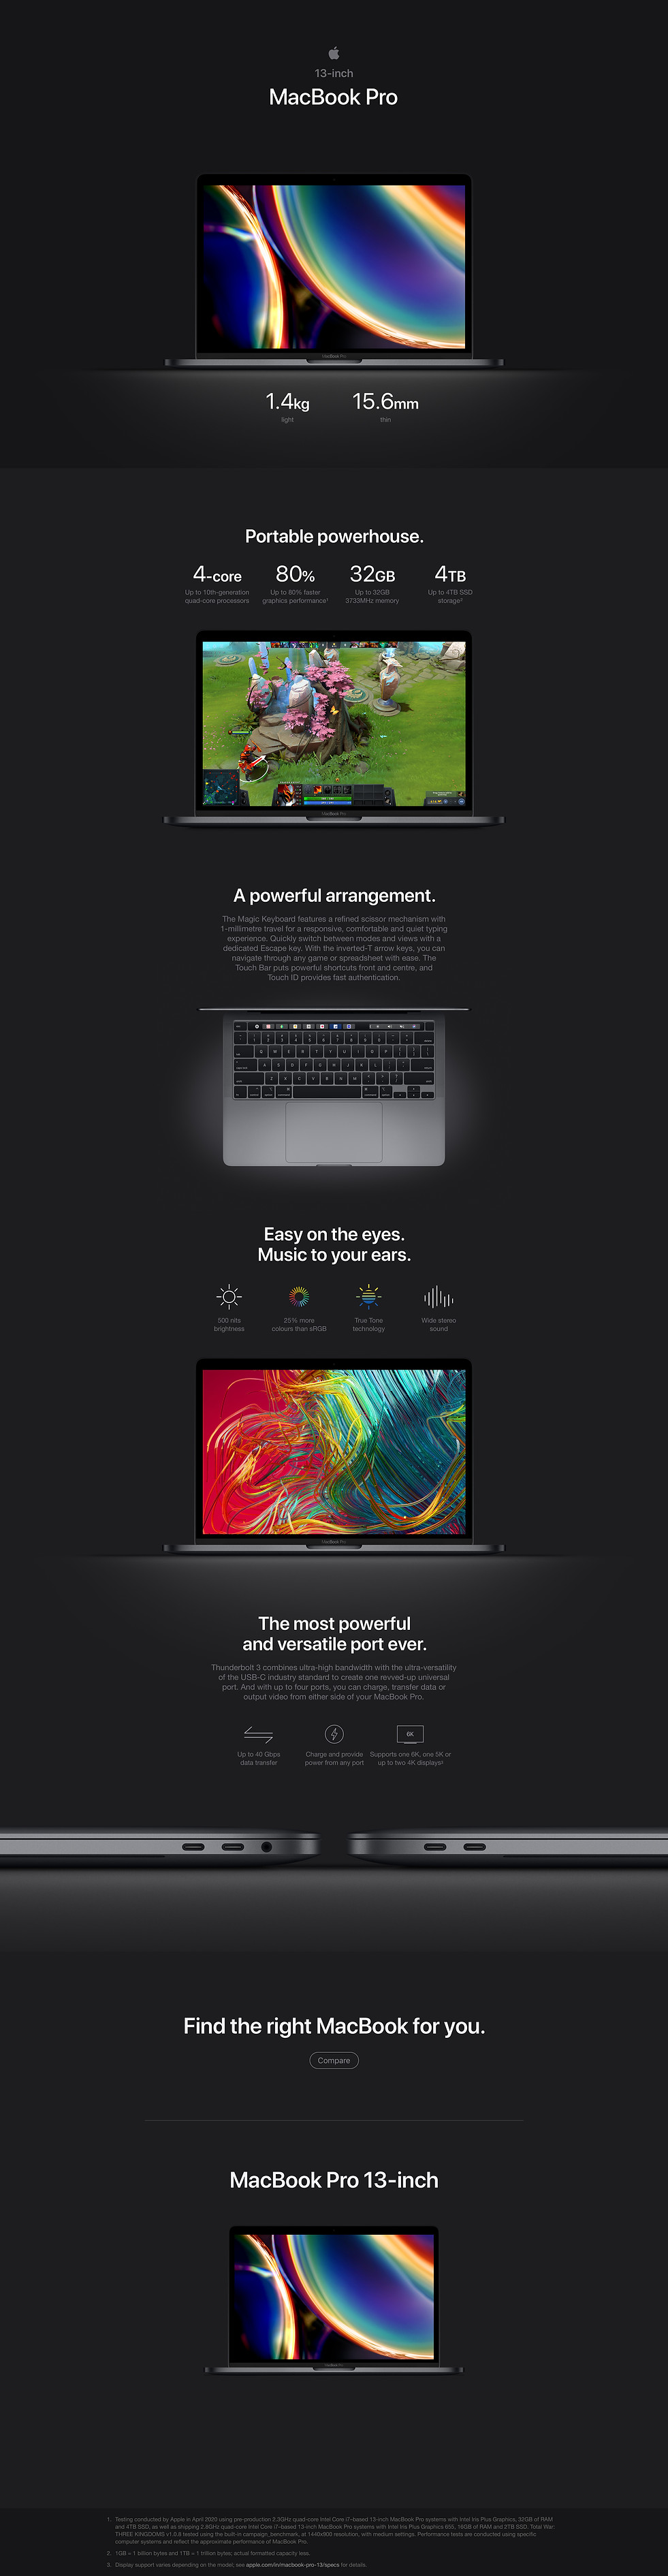 macbook pro 13 2020 product page.JPG